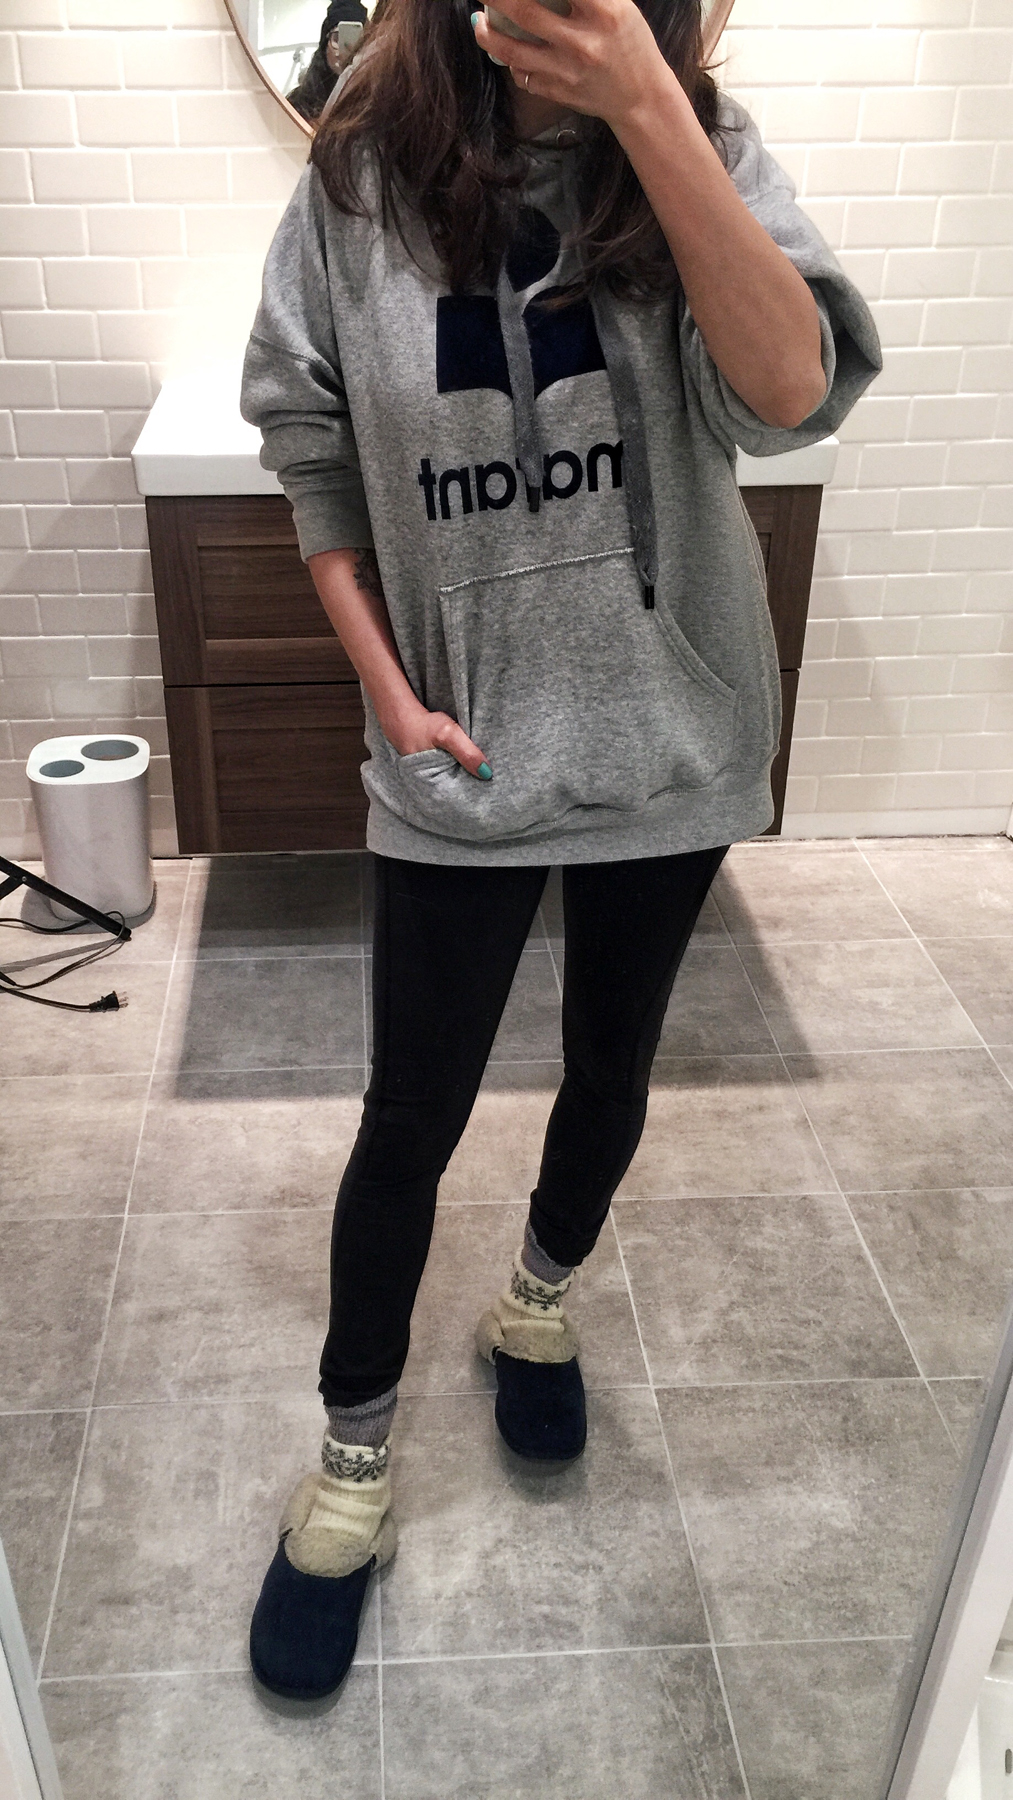 woahstyle.com - 365 outfits - day 6 spring 2018 - isabel marant hoodie nathalie martin.JPG